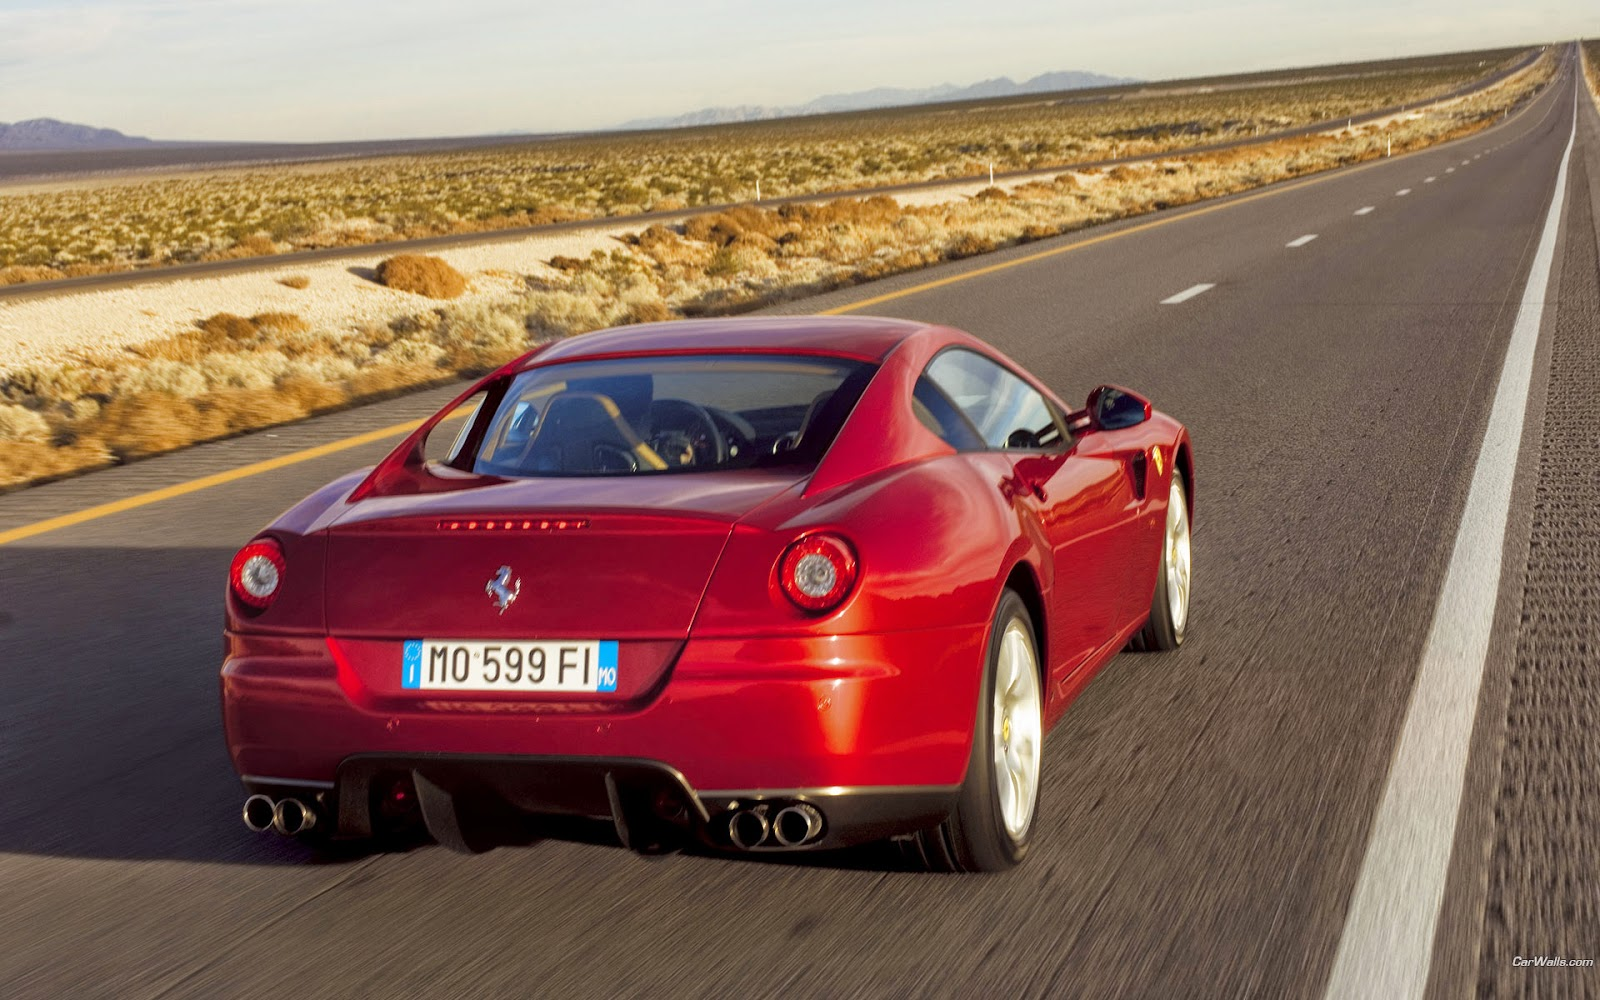 Red Hot Ferrari Wallpapers Photo